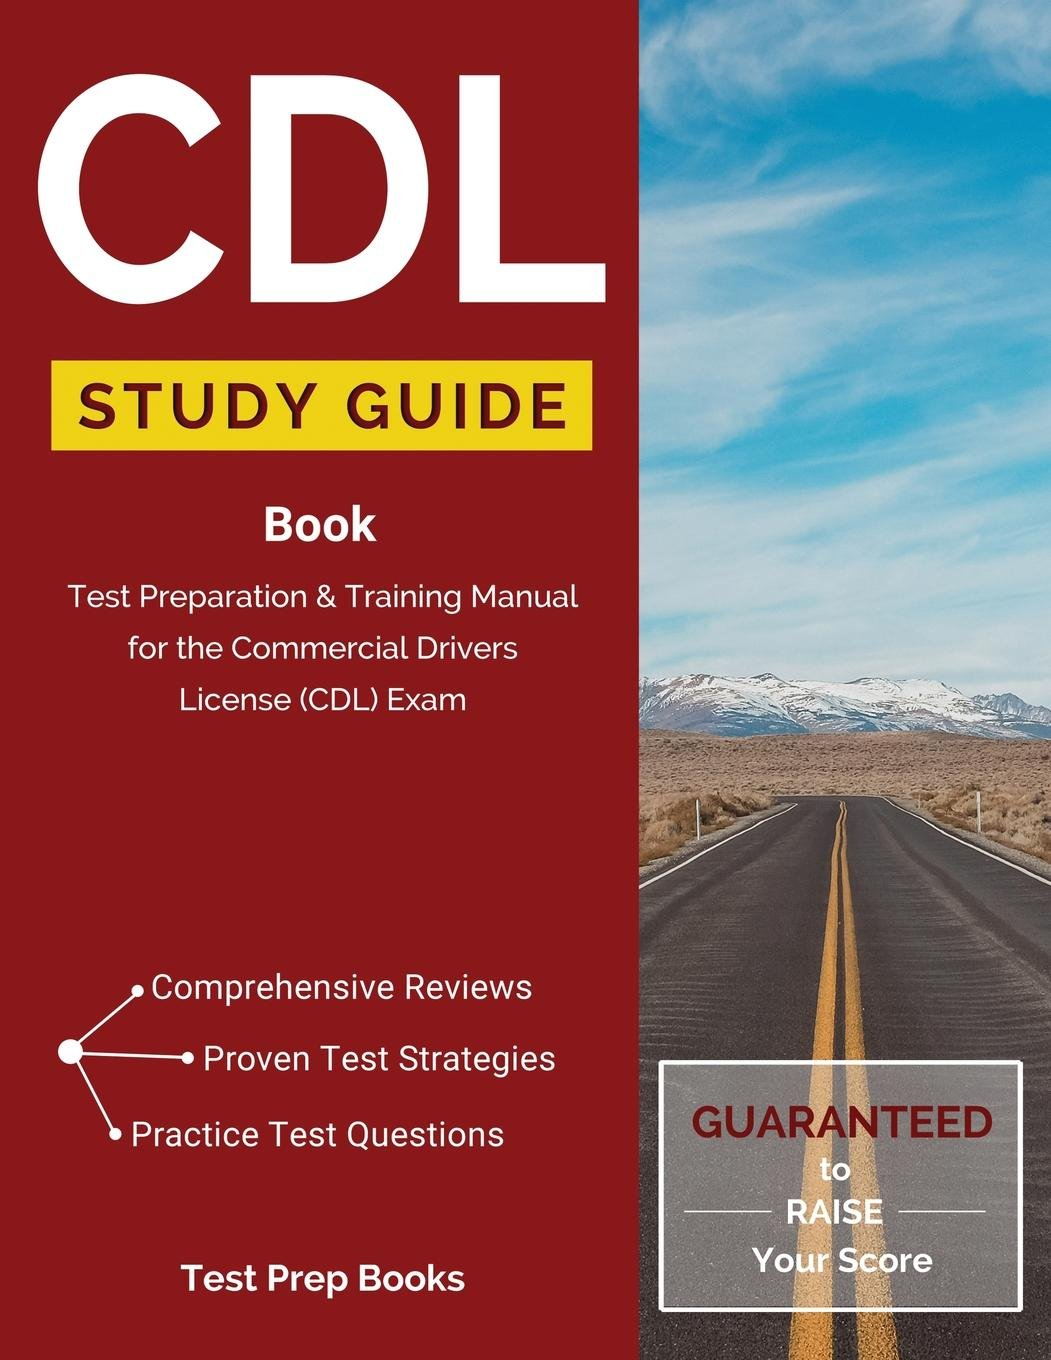 CDL Study Guide Book: Test Preparation & Training Manual for the Commercial  Drivers License (CDL) Exam: (Test Prep Books) Paperback – Jan 29 2016